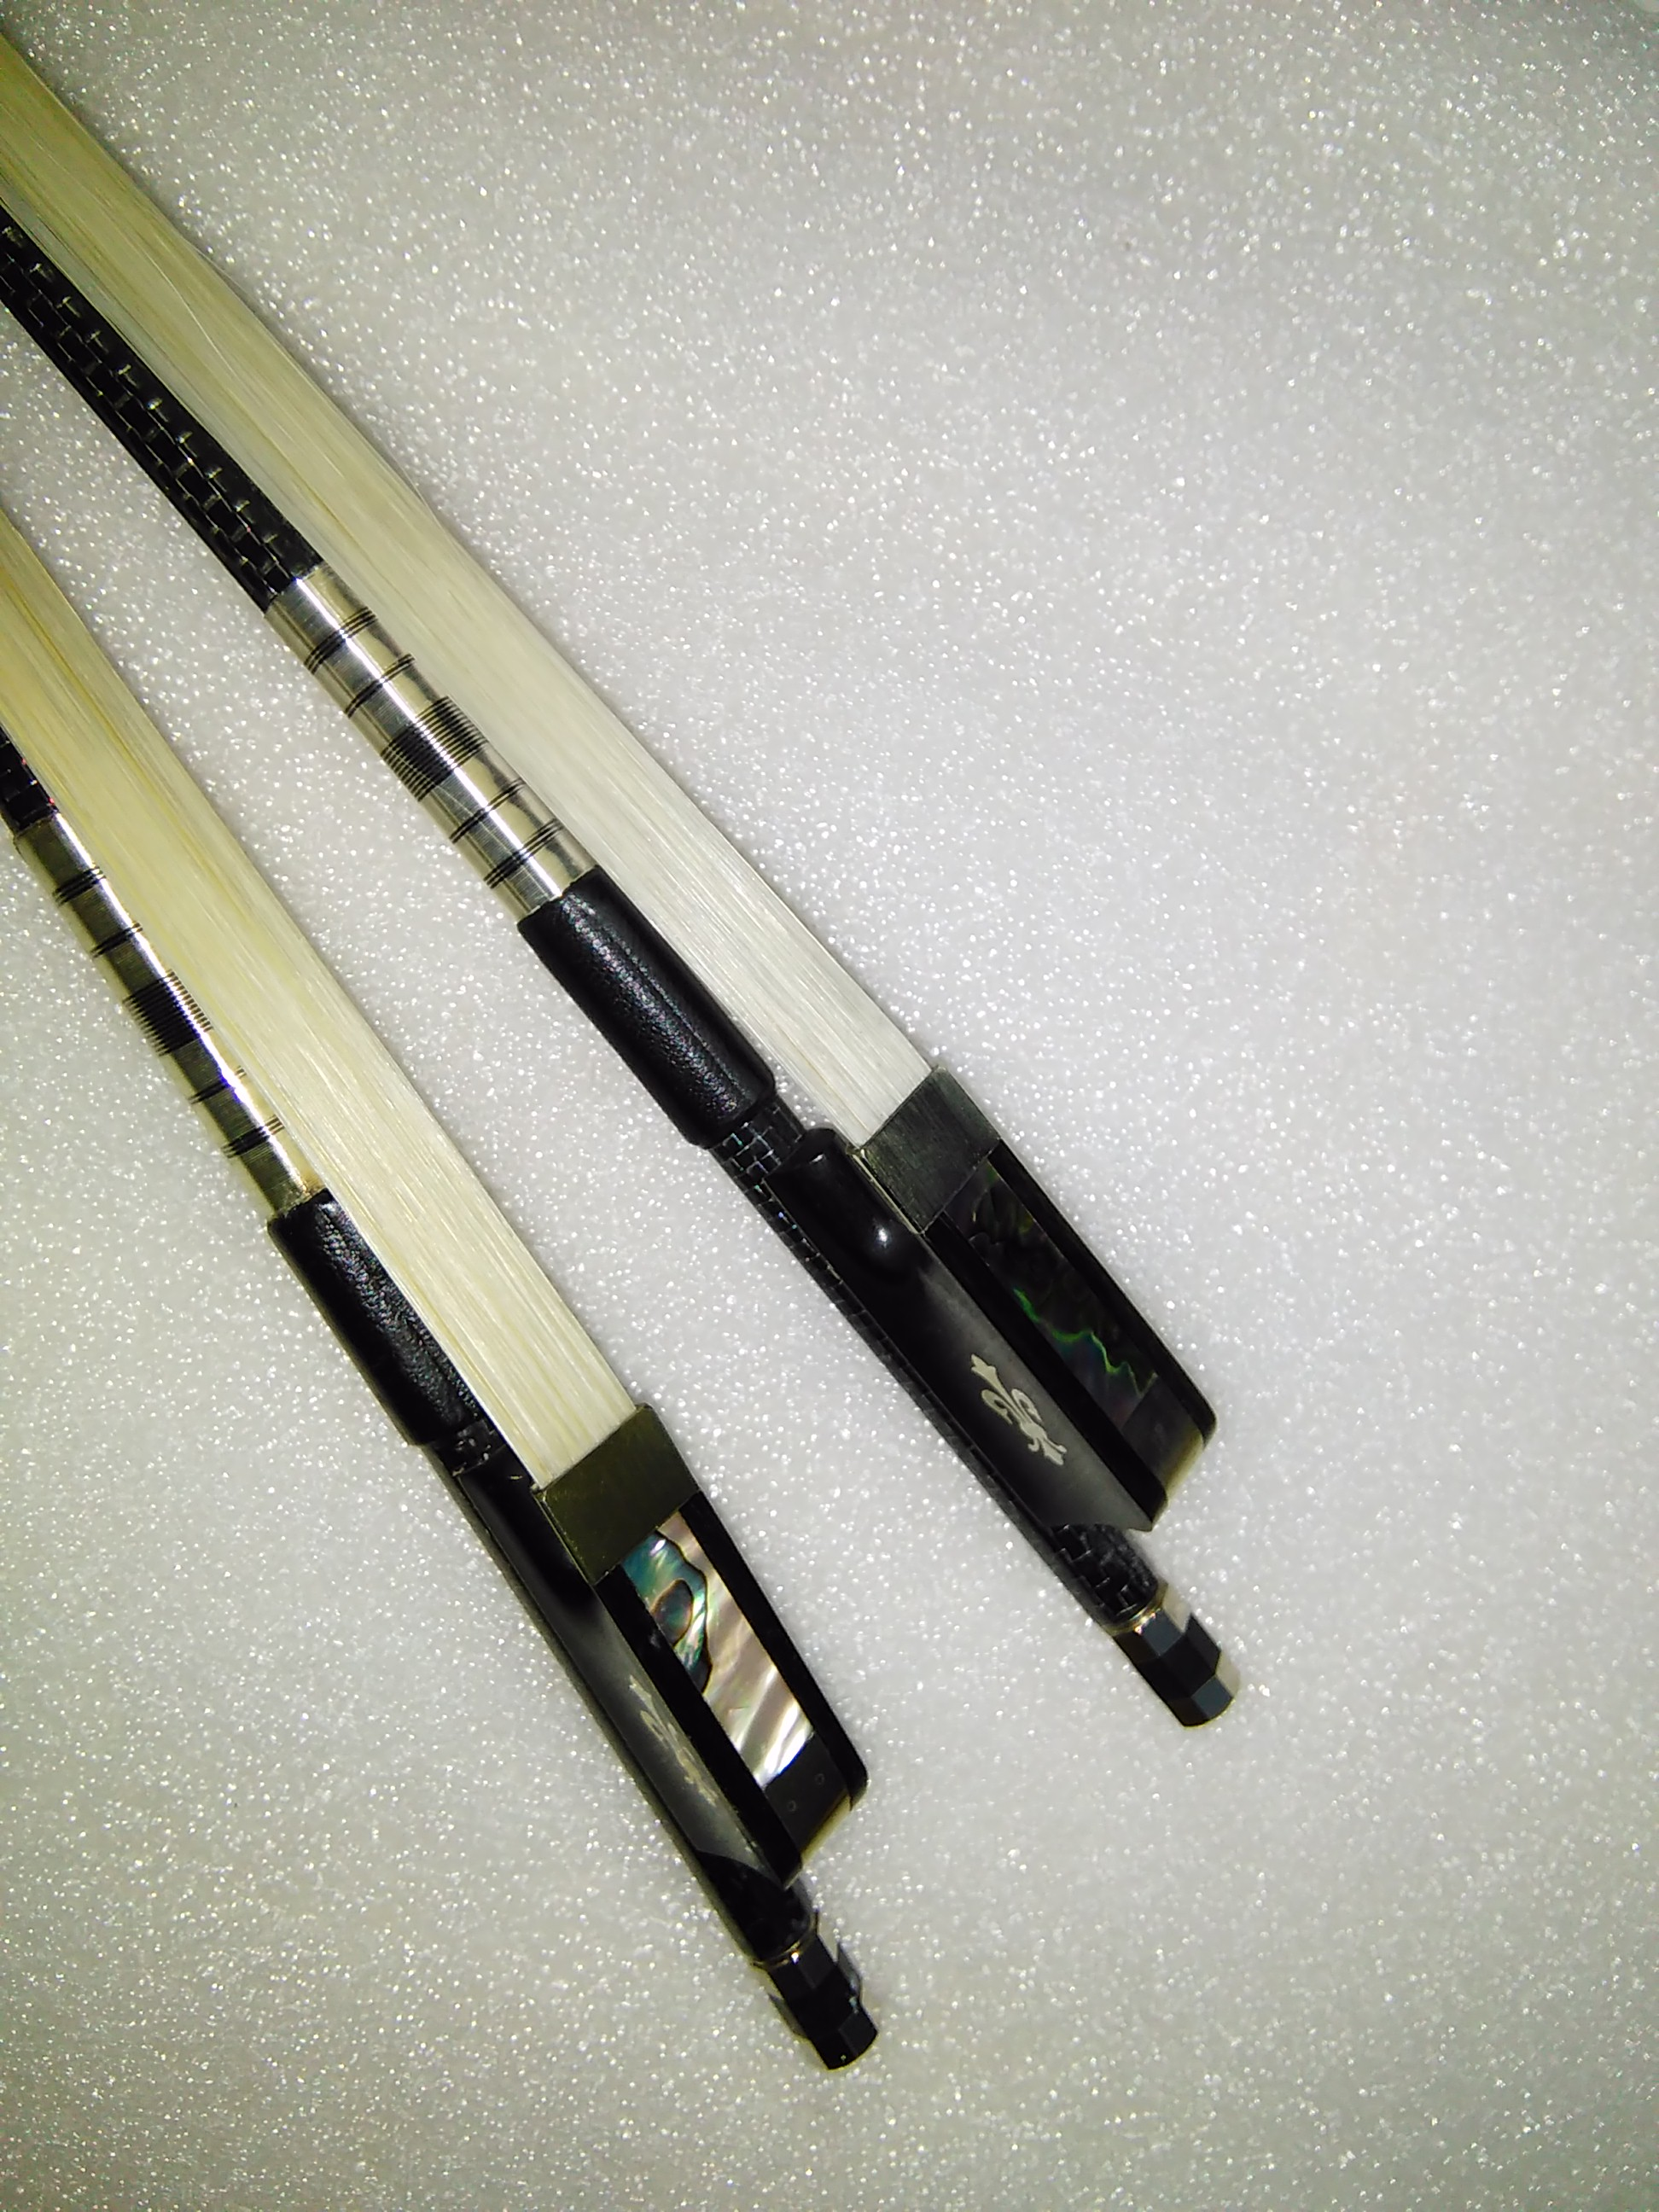 2 PCs Cello bow Carbon Fiber Cello bow with white bow hair ebony frog 4/4 one is silver wire inlay one is red wire inlay сумка bottega veneta 283363 bv